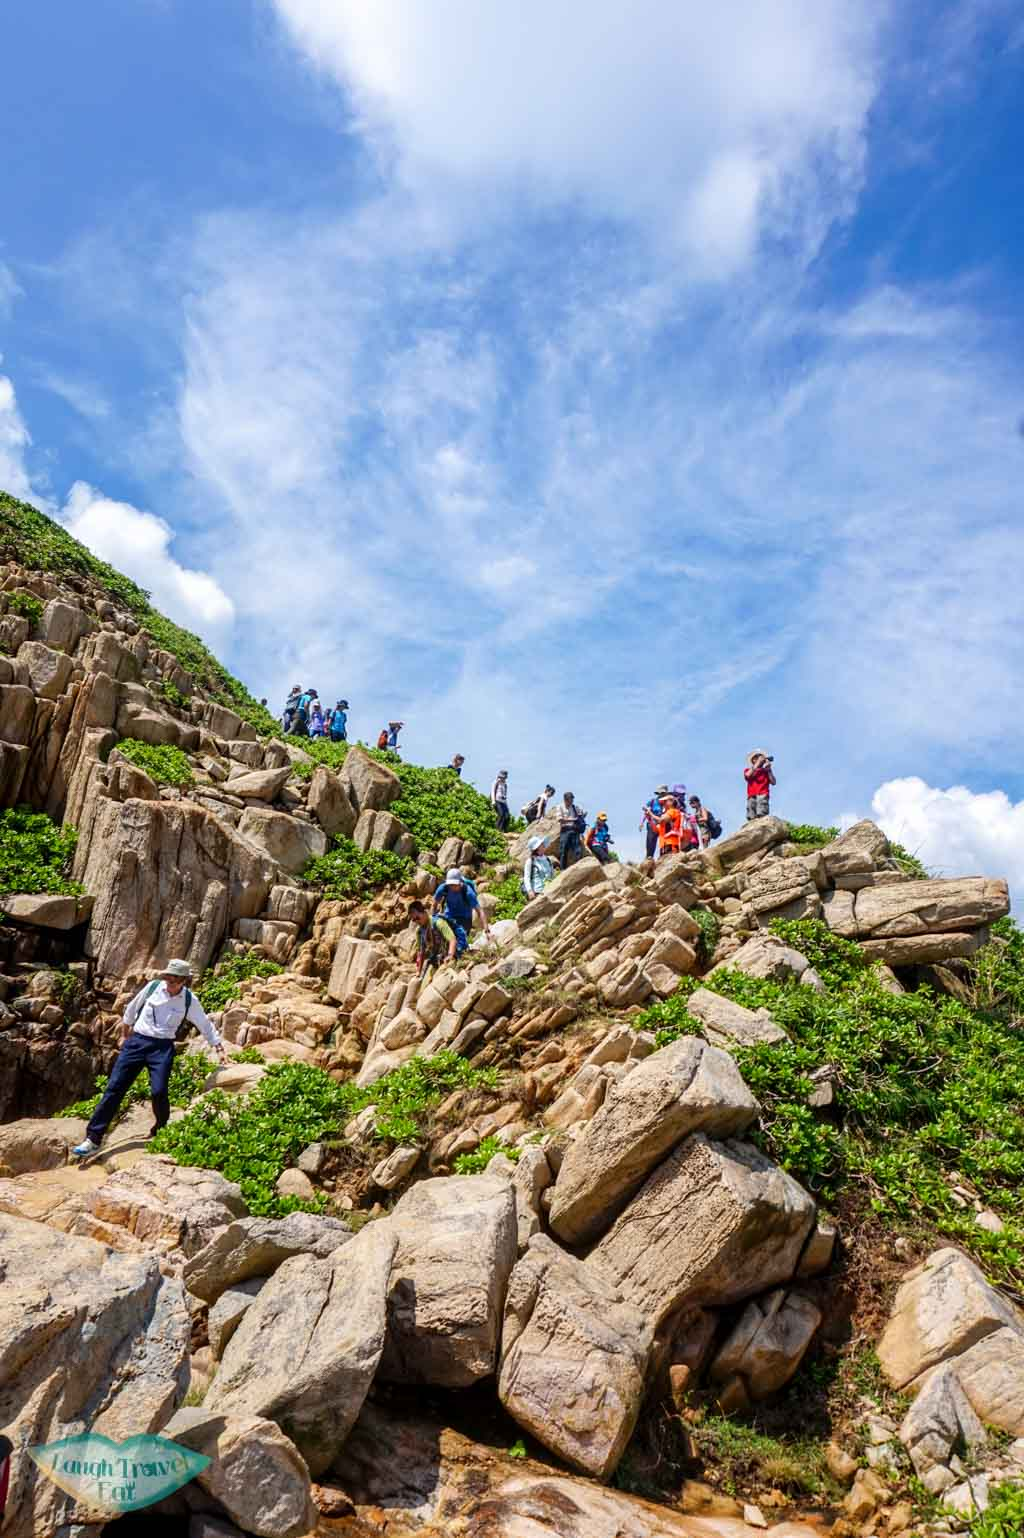 going down to big stove arch at ngan peng tau north ninepin island sai kung hong kong - Laugh Travel Eat